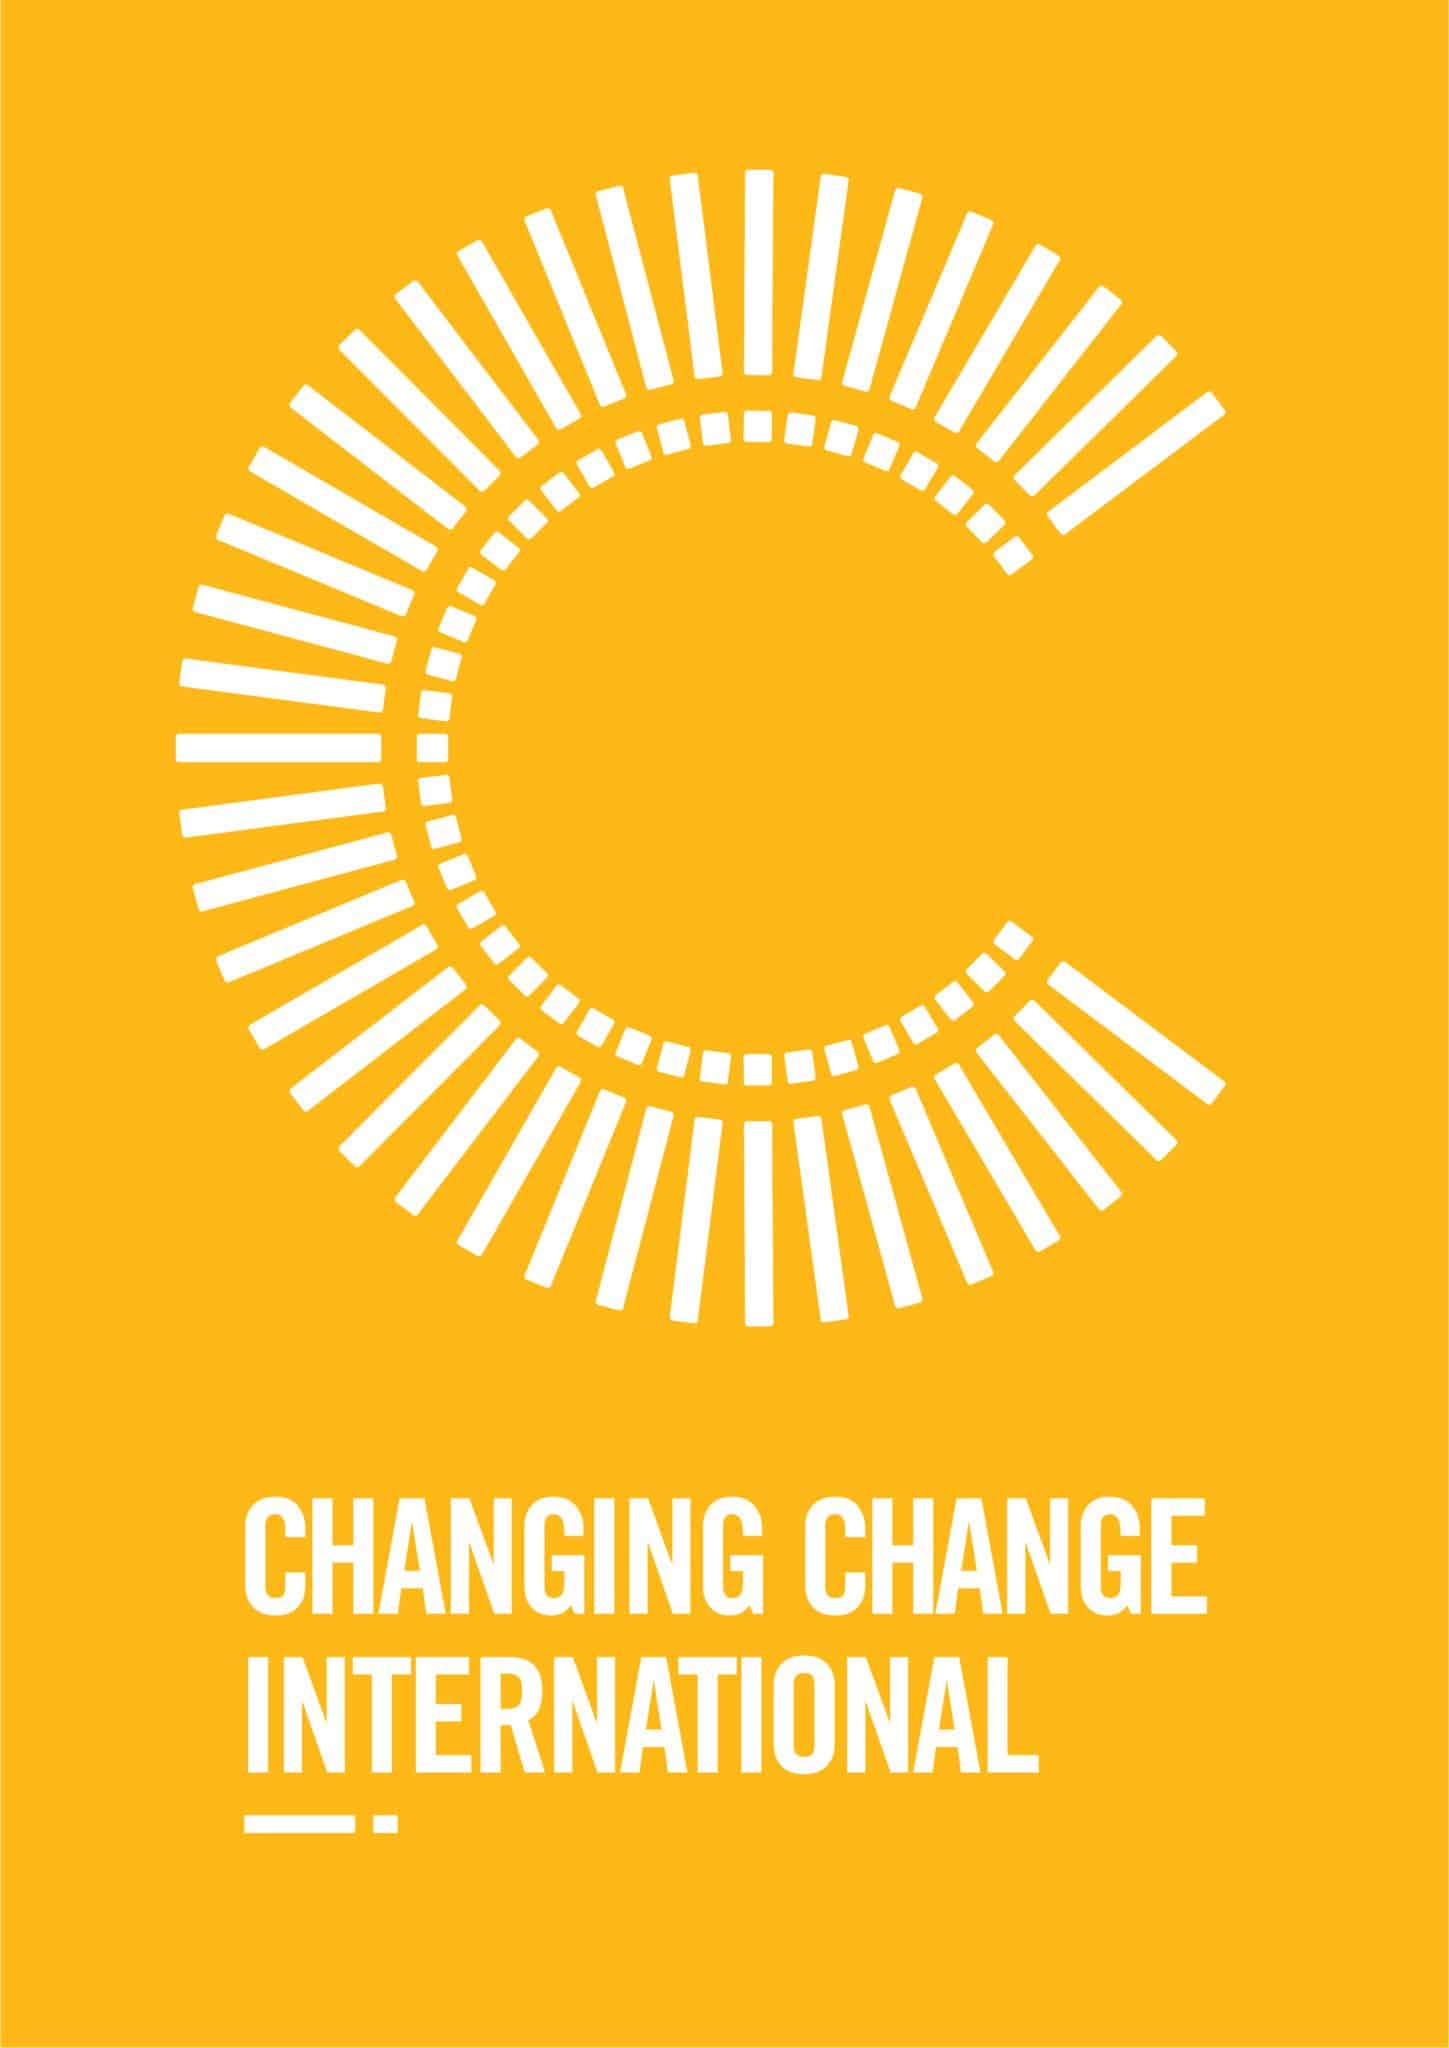 Changing Change International